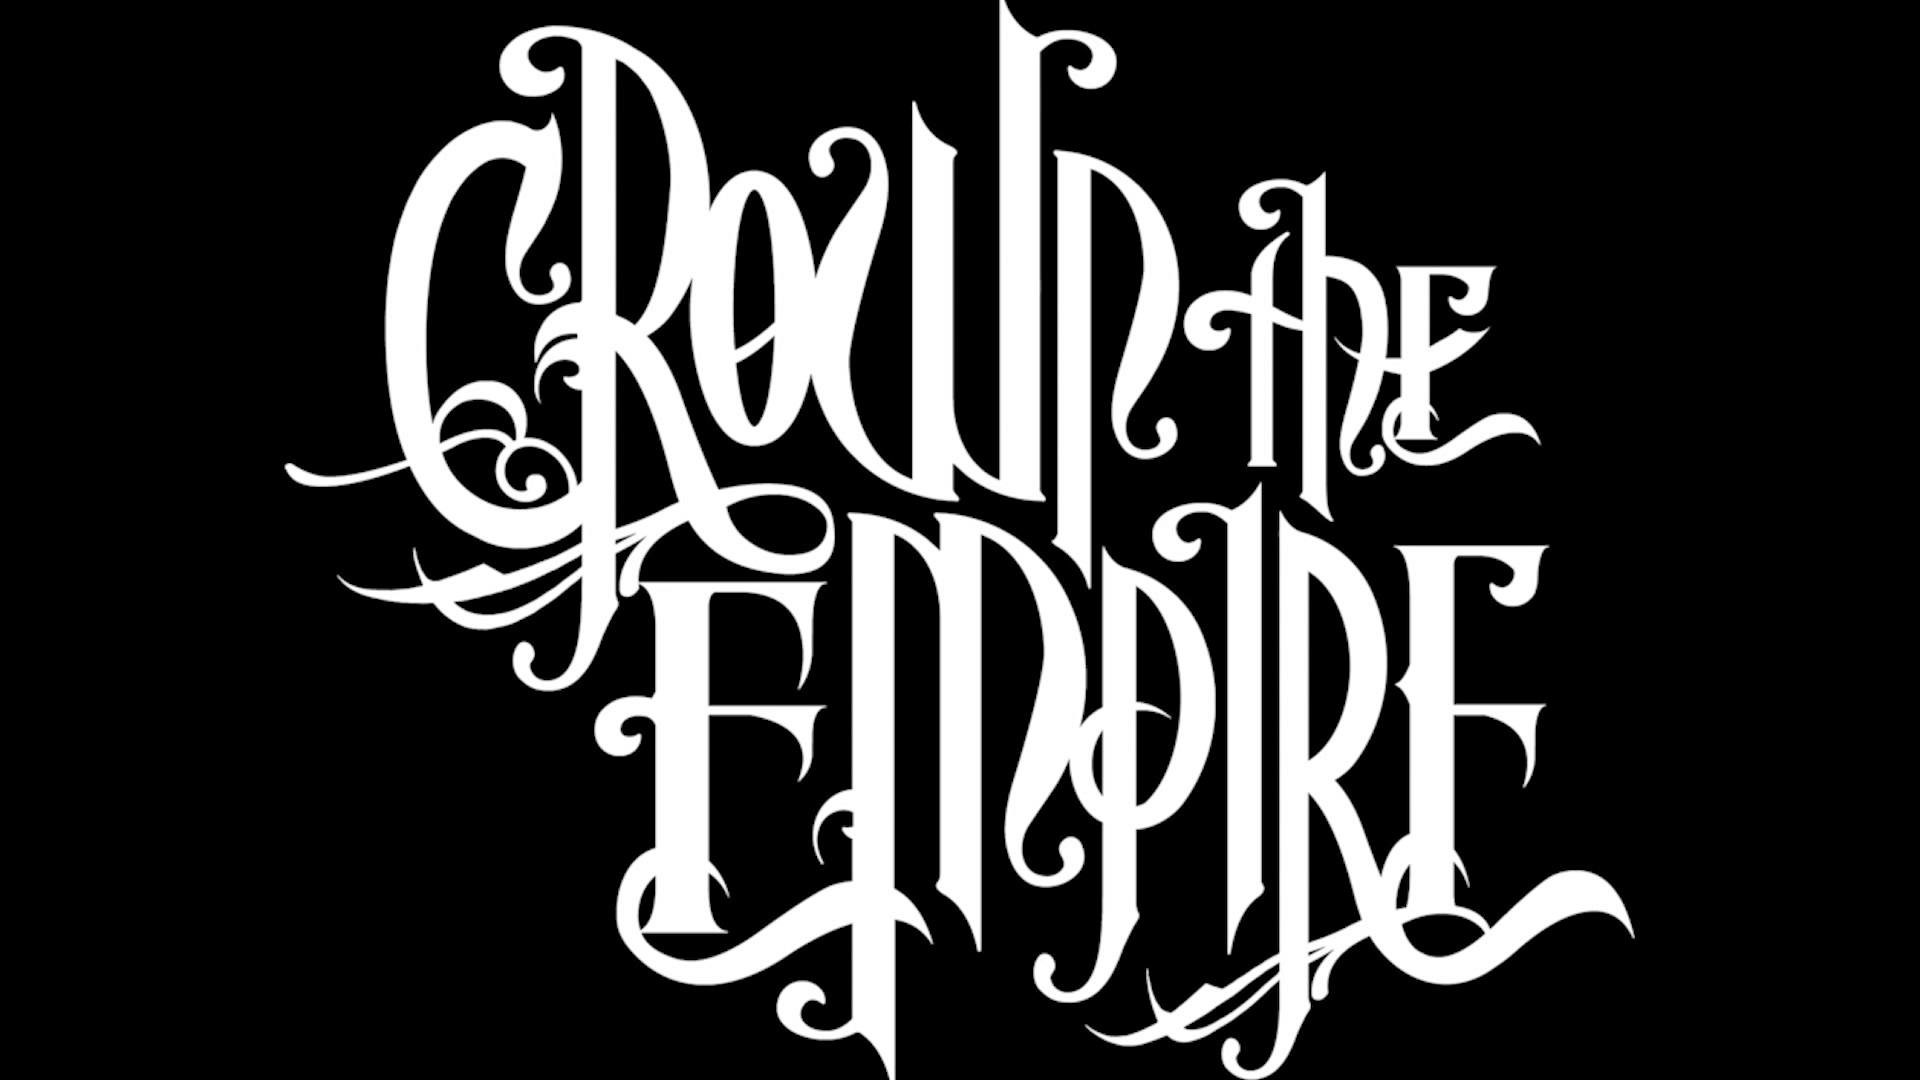 Crown The Empire Wallpapers Wallpapertag